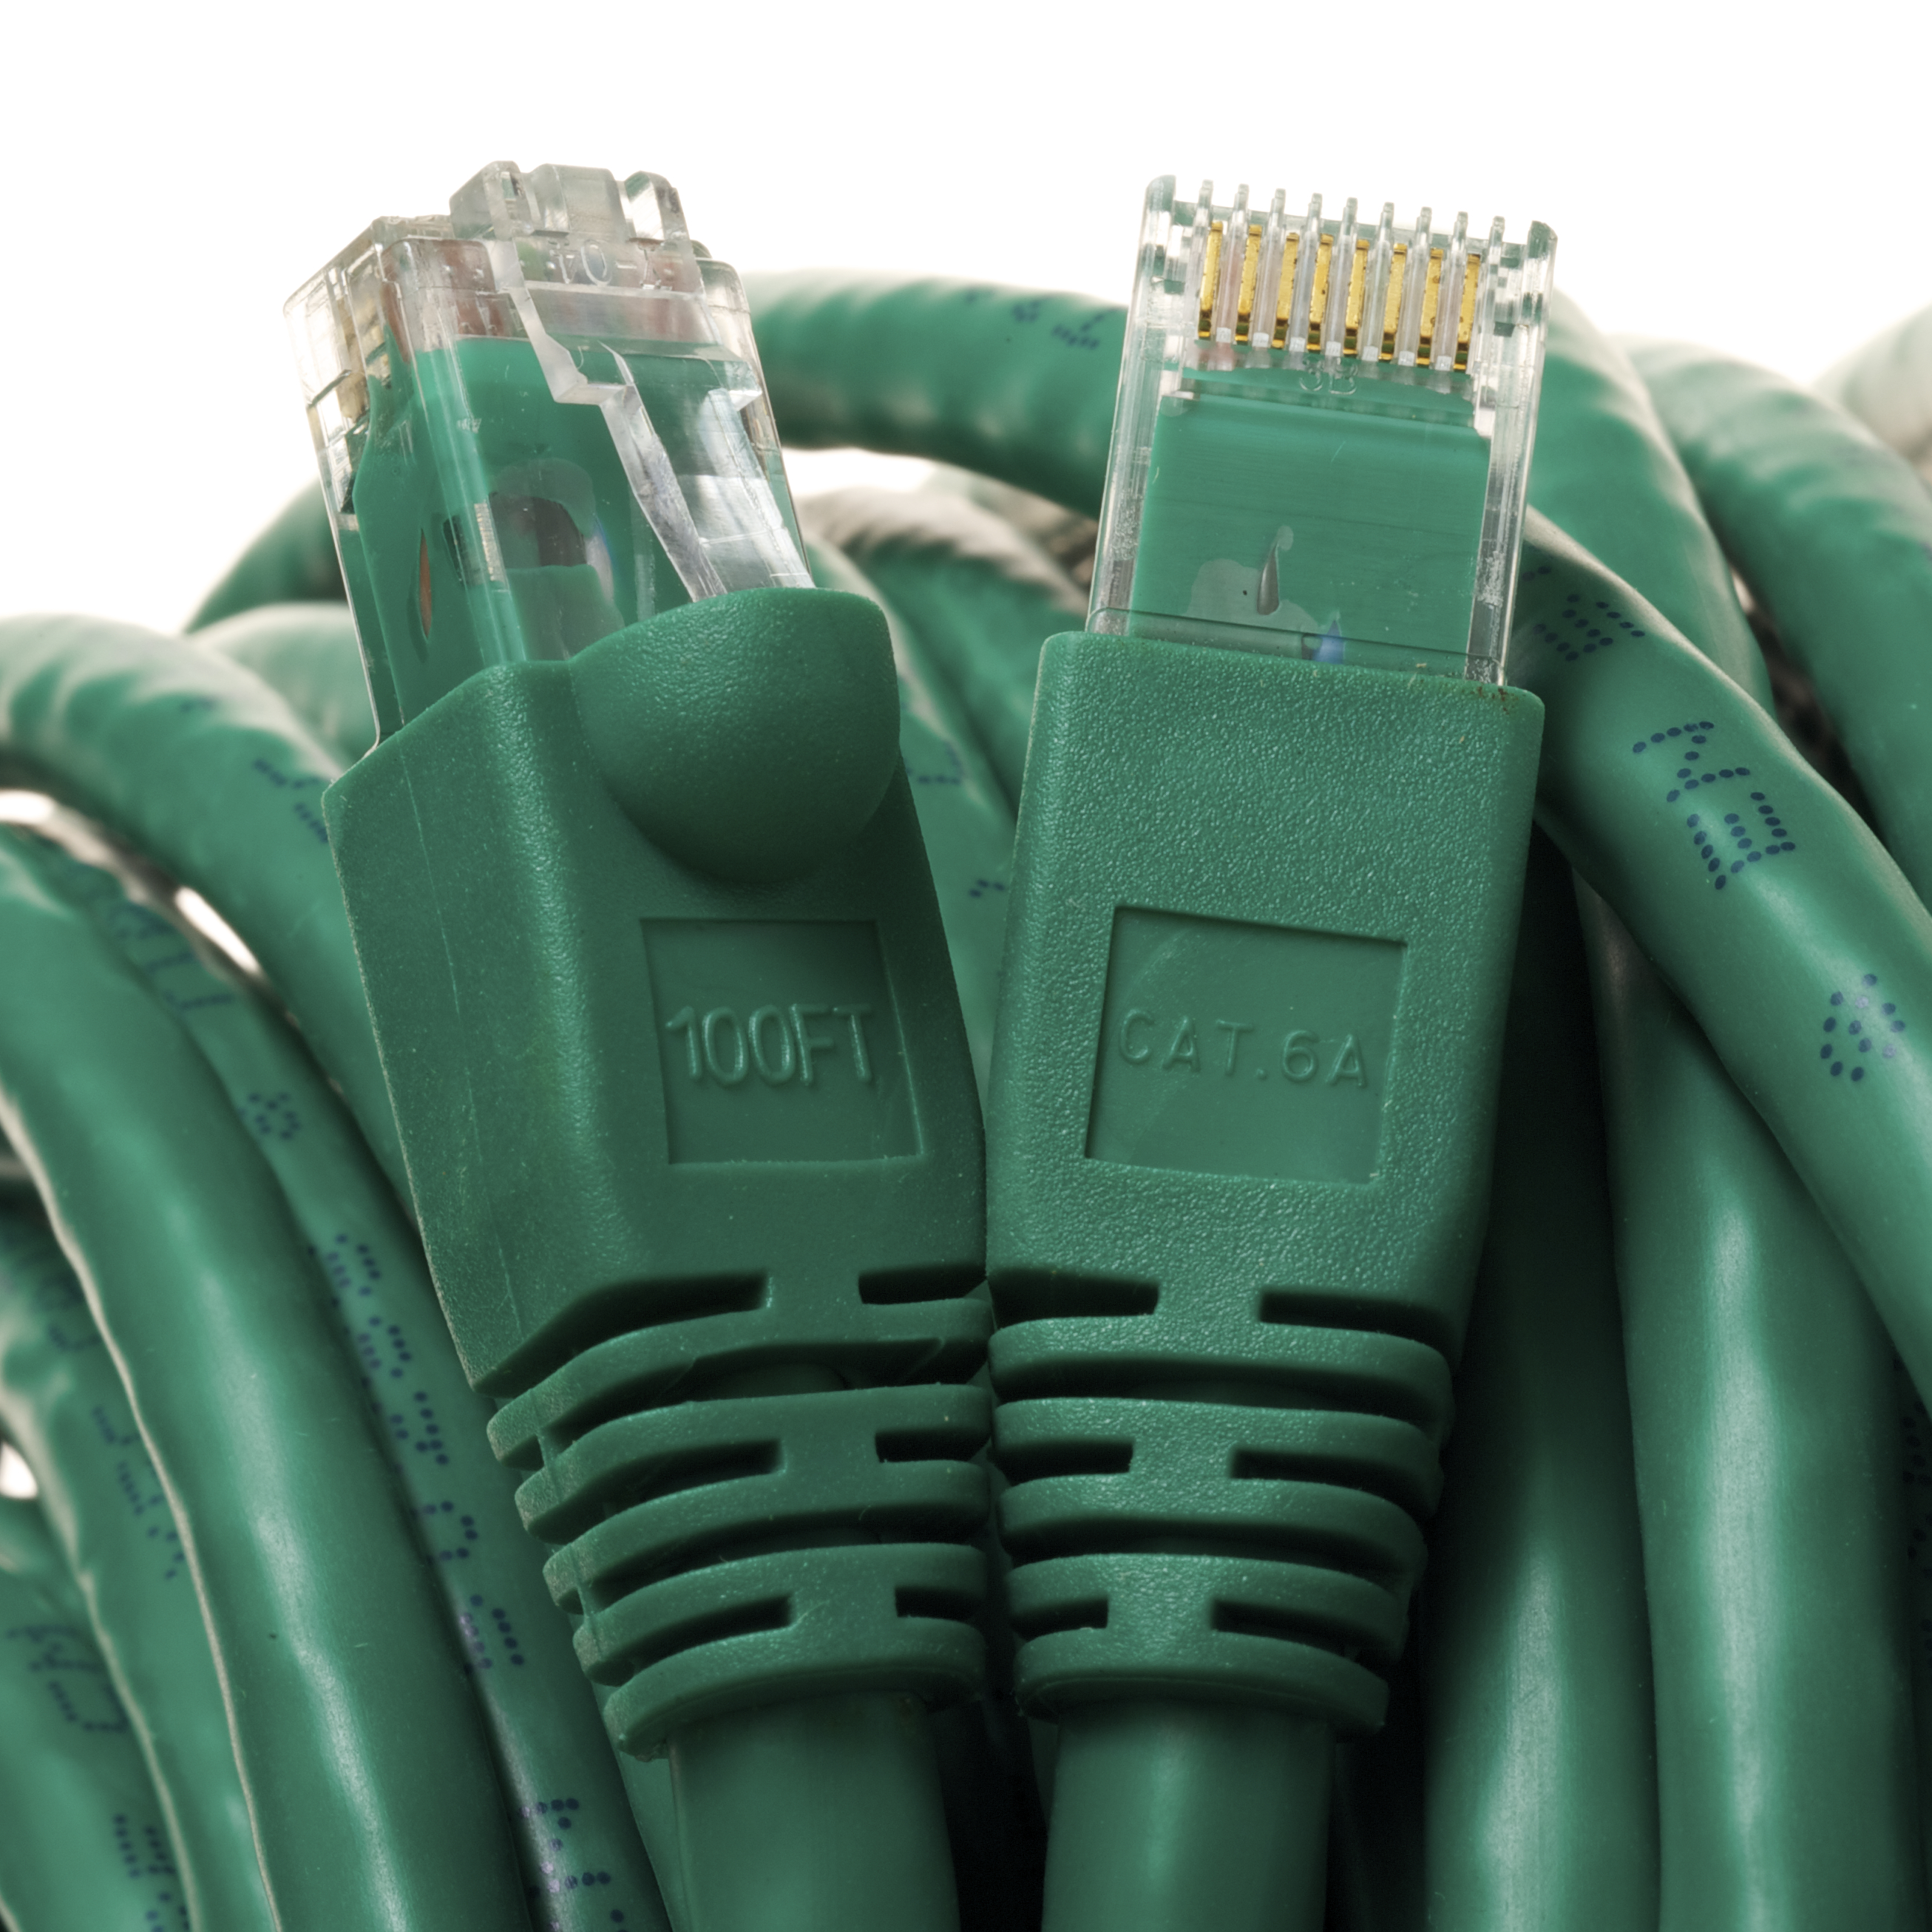 Category 6A Green Network Cables